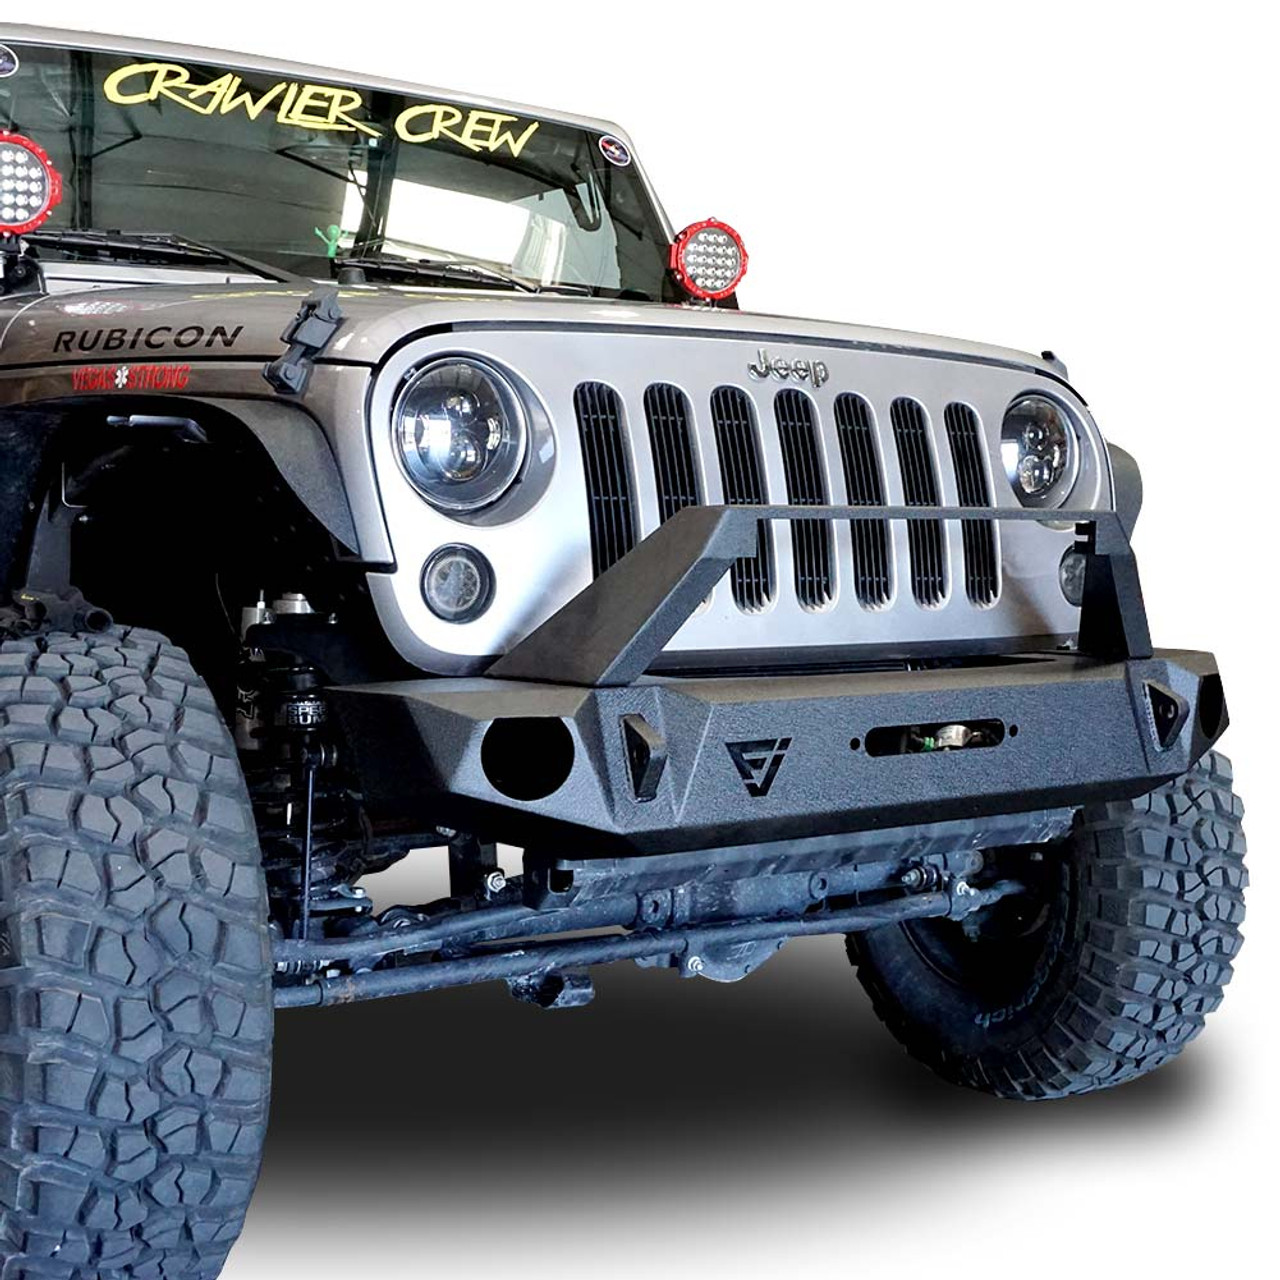 Front high rise bull bar bumper wlight bar holder woem fog holes front high rise bull bar bumper wlight bar holder woem fog holes aloadofball Image collections